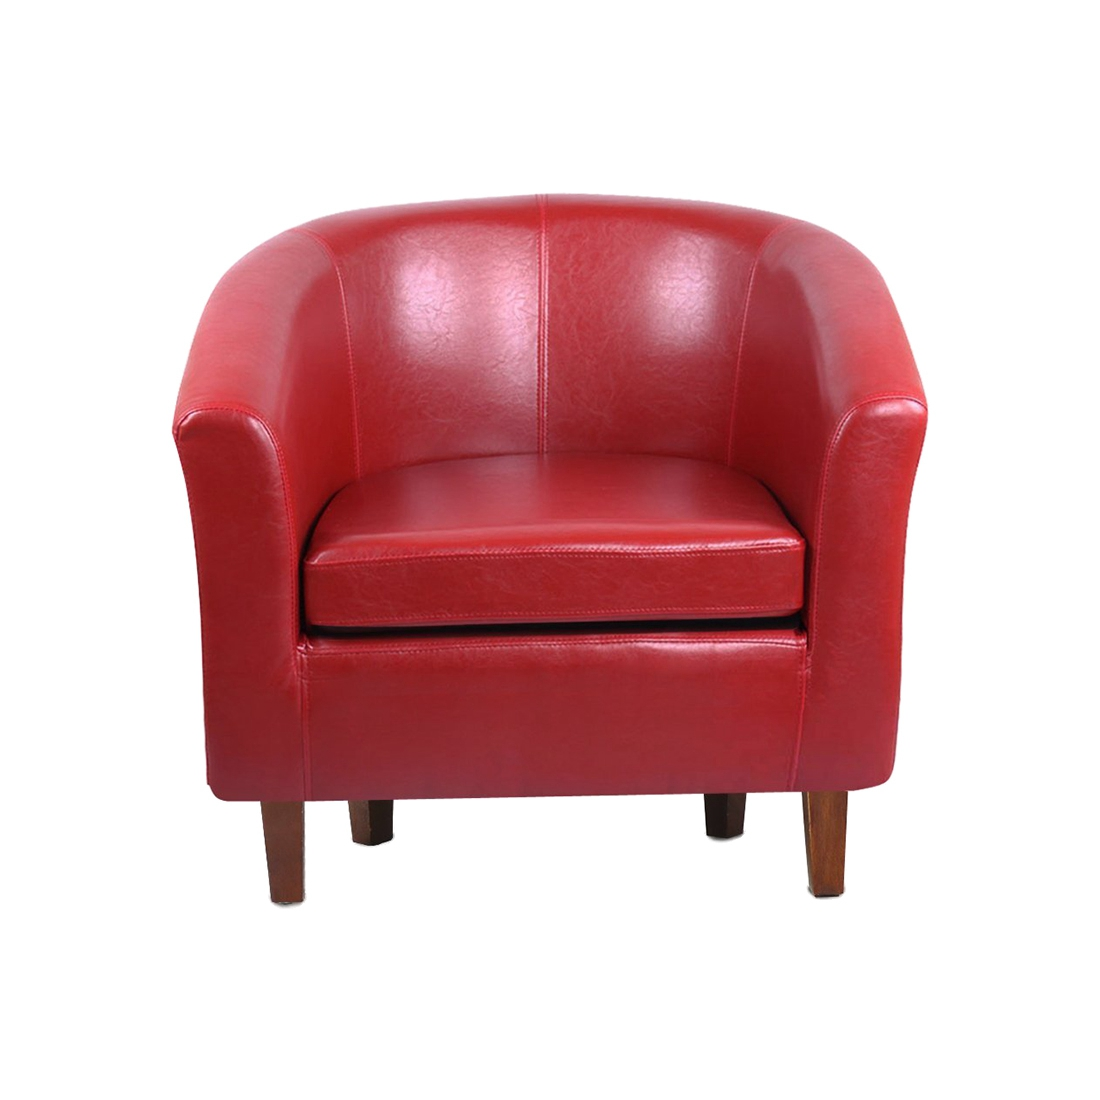 compare s on tub chair sofa online ping low